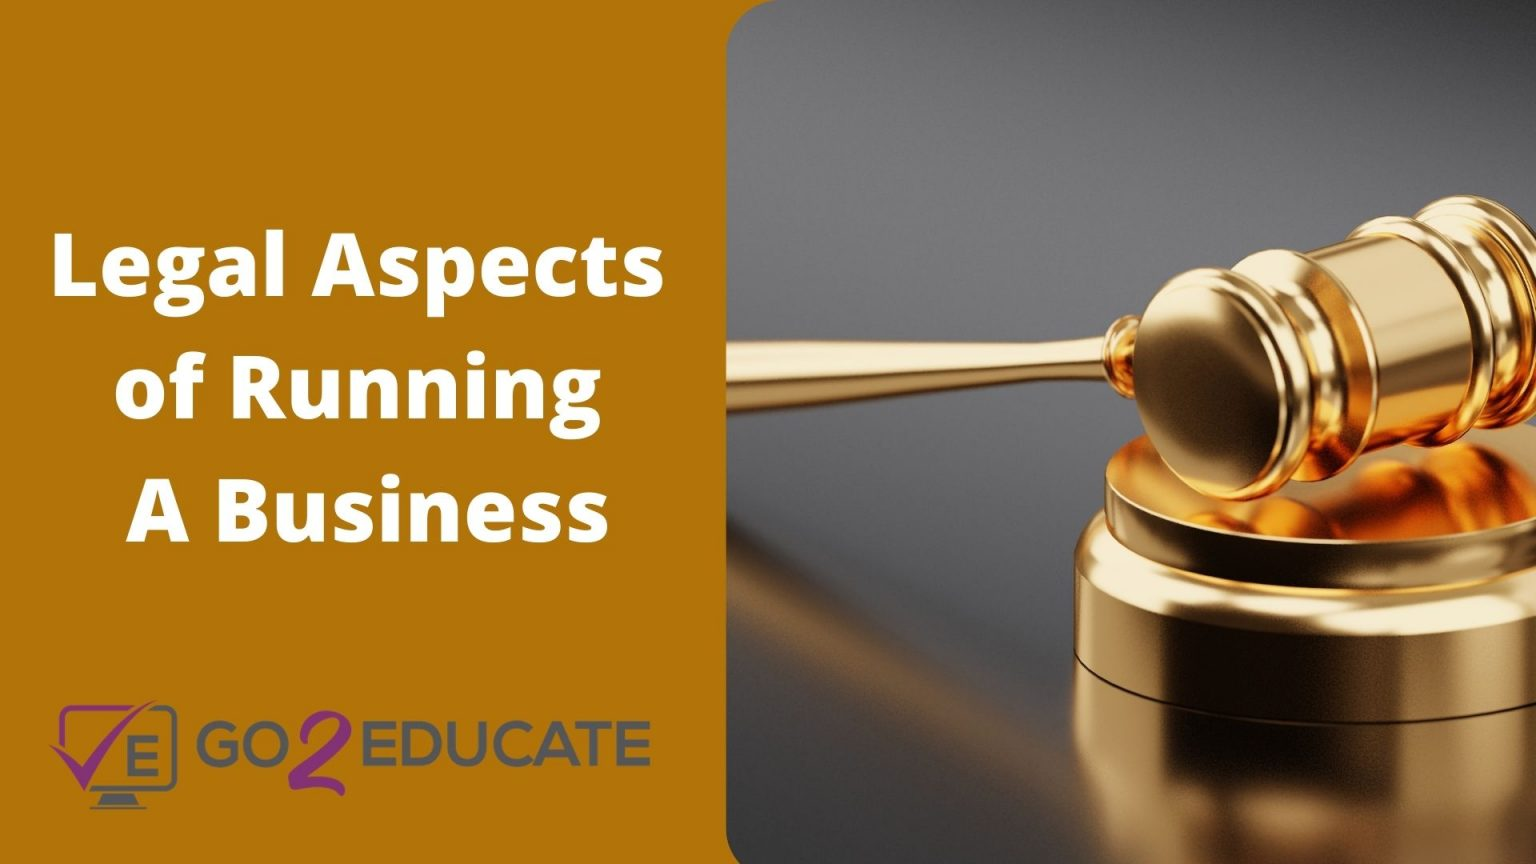 Legal Aspects of Running A Business Home